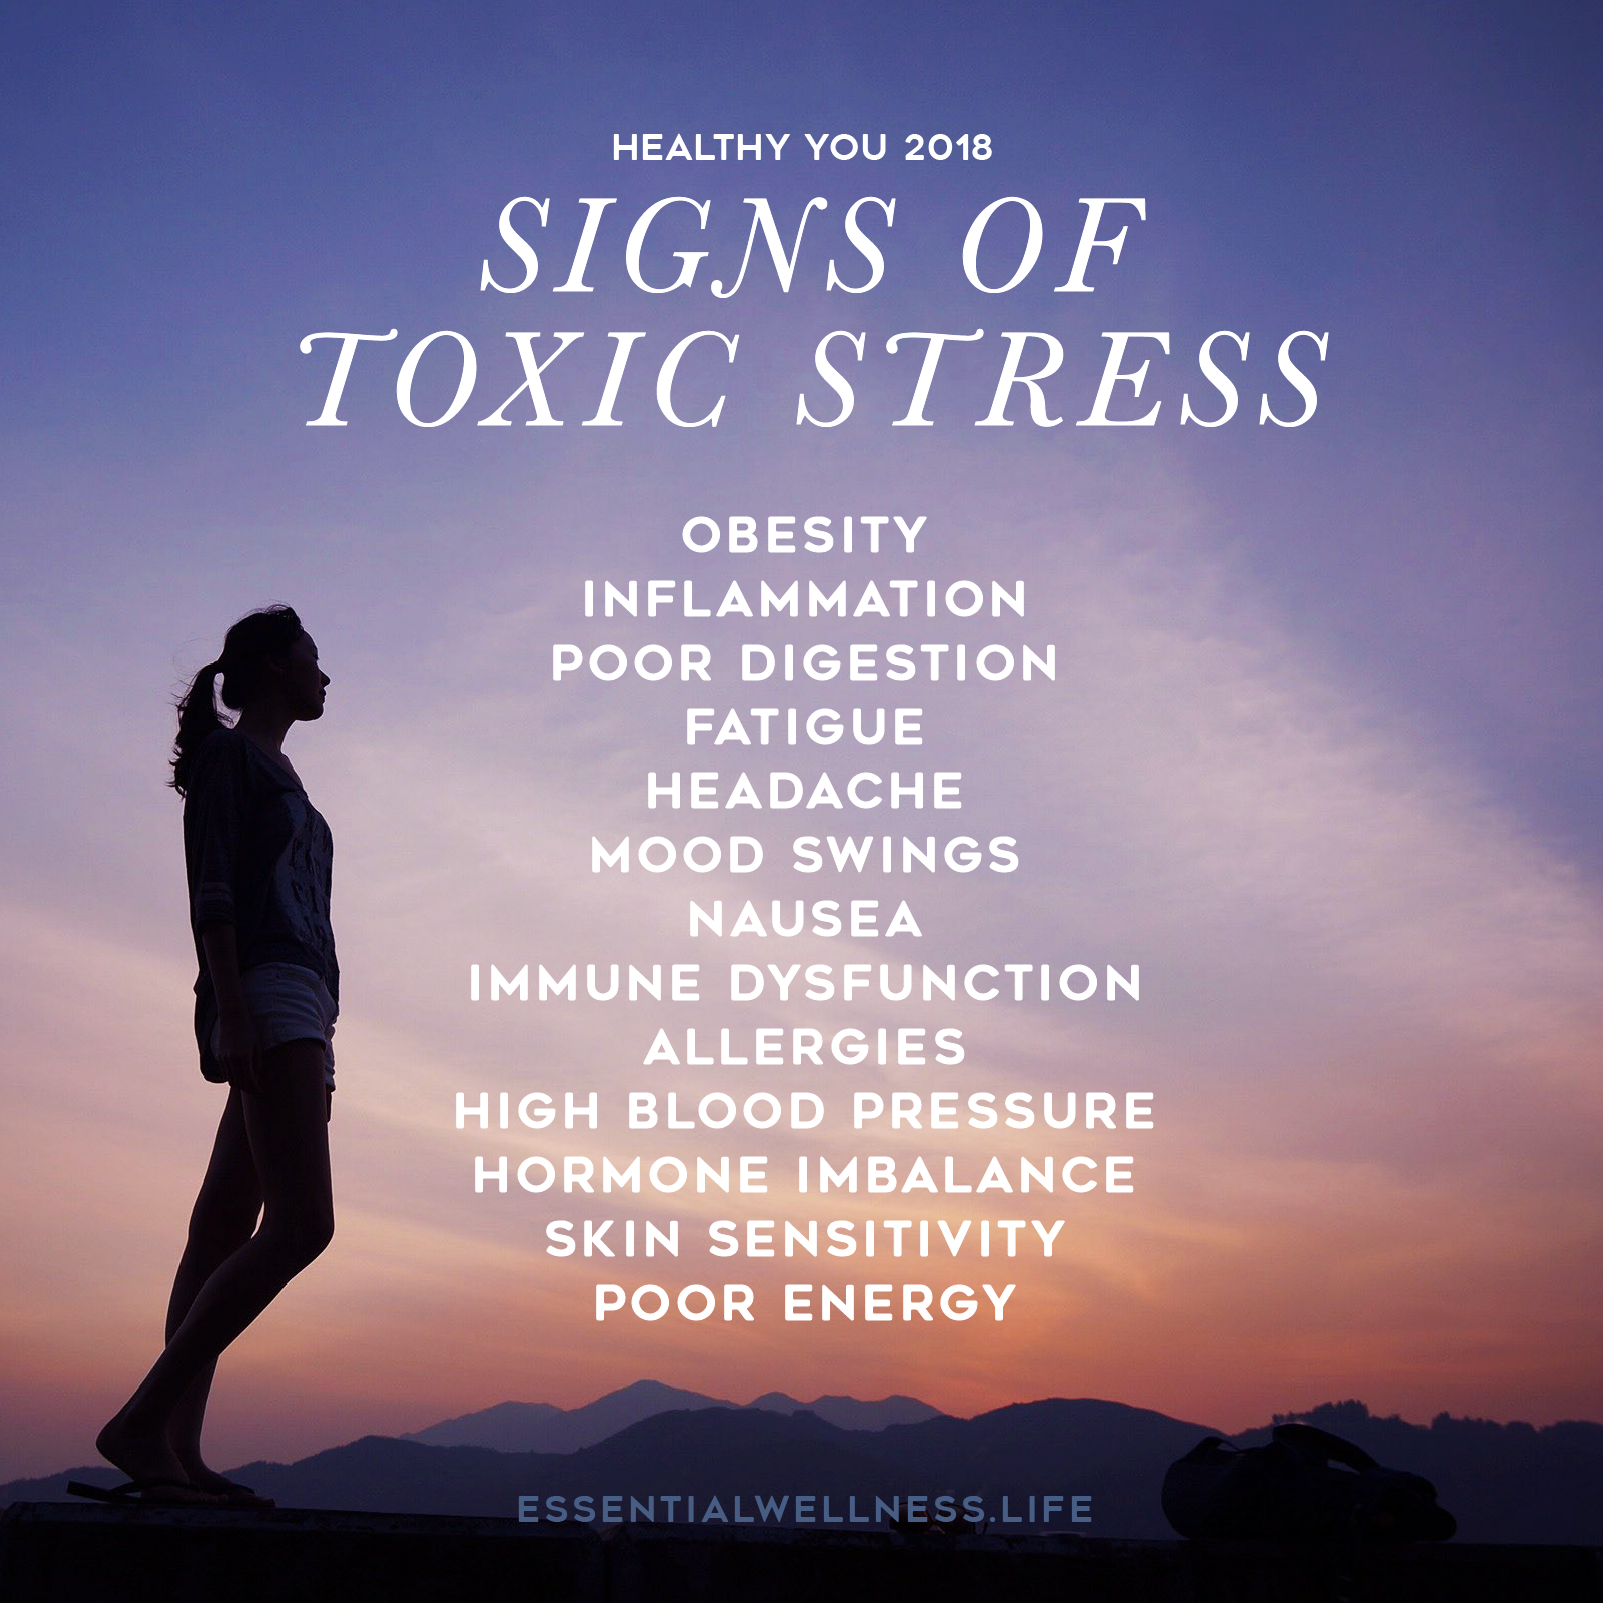 2018 healthy you_signs of toxic stress.png